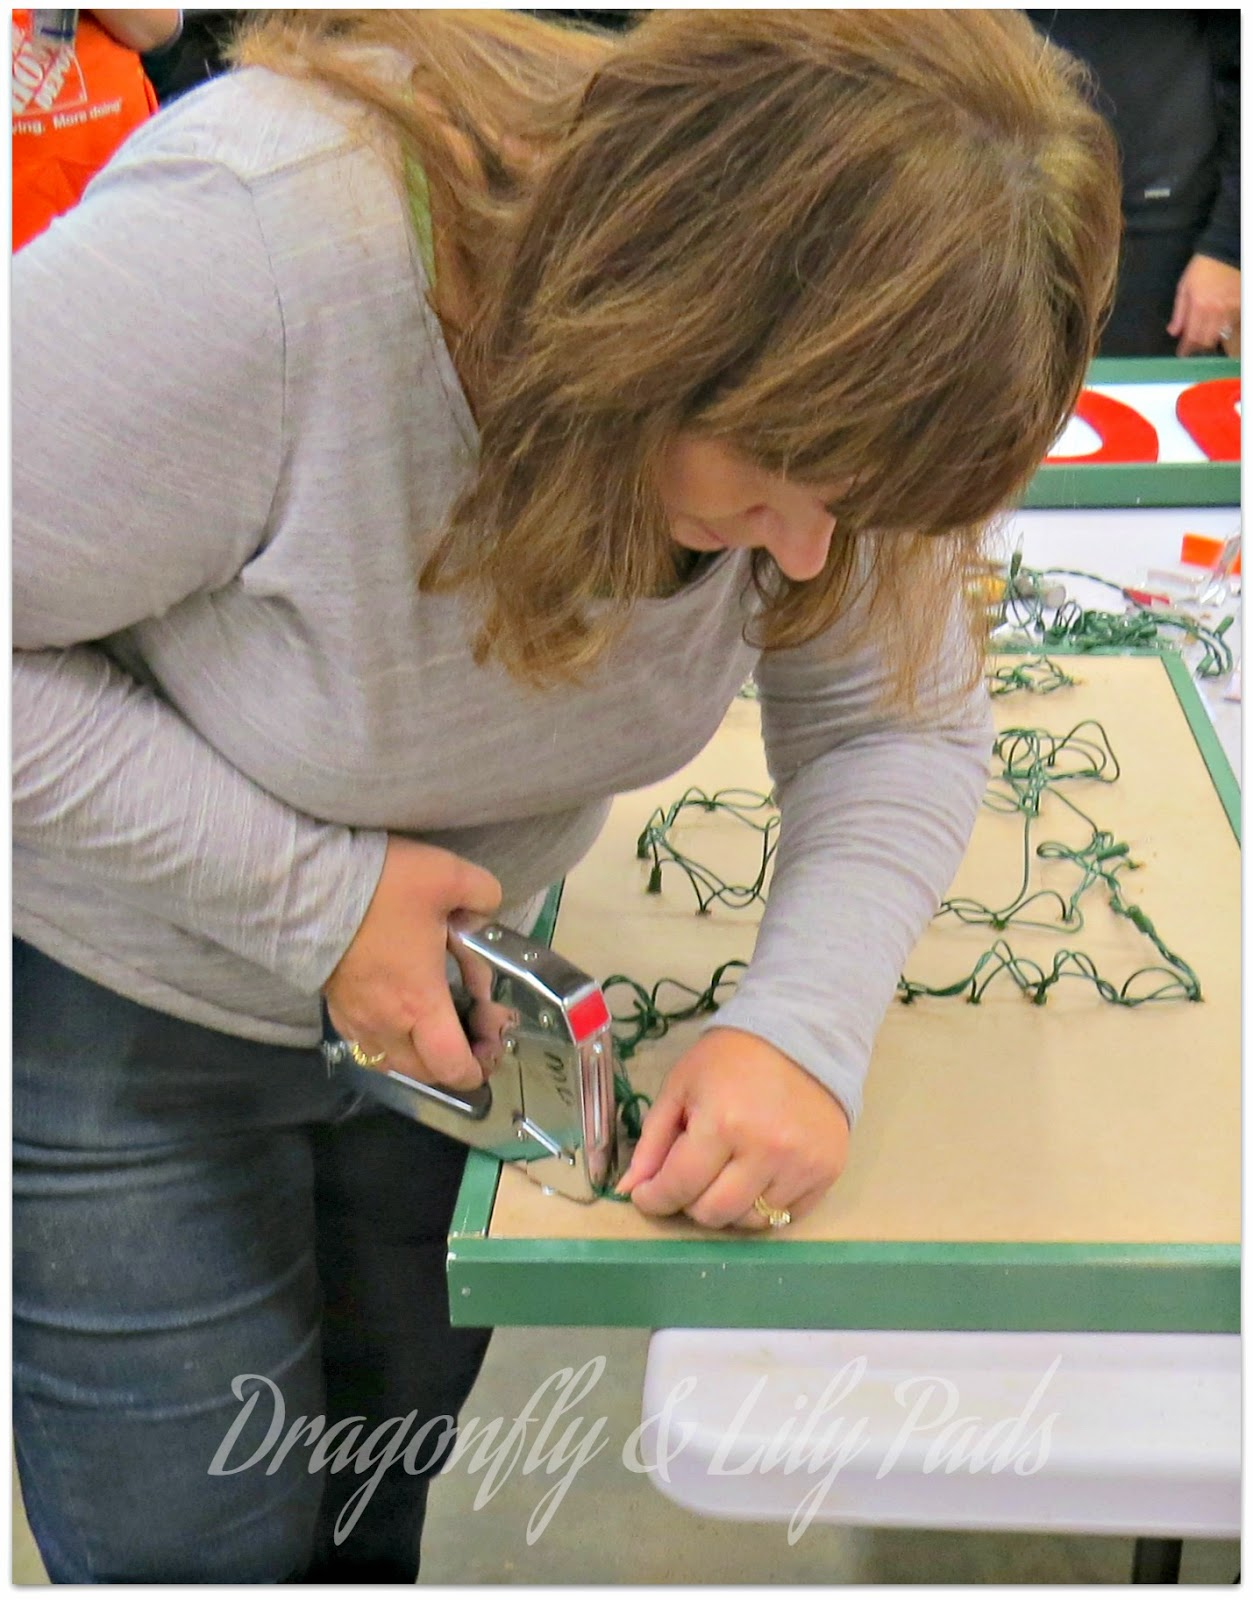 Dragonfly lily pads home depot do it herself workshop 2 staple gun christmas lights home depot joy marquee sign her it yourself workshop solutioingenieria Image collections